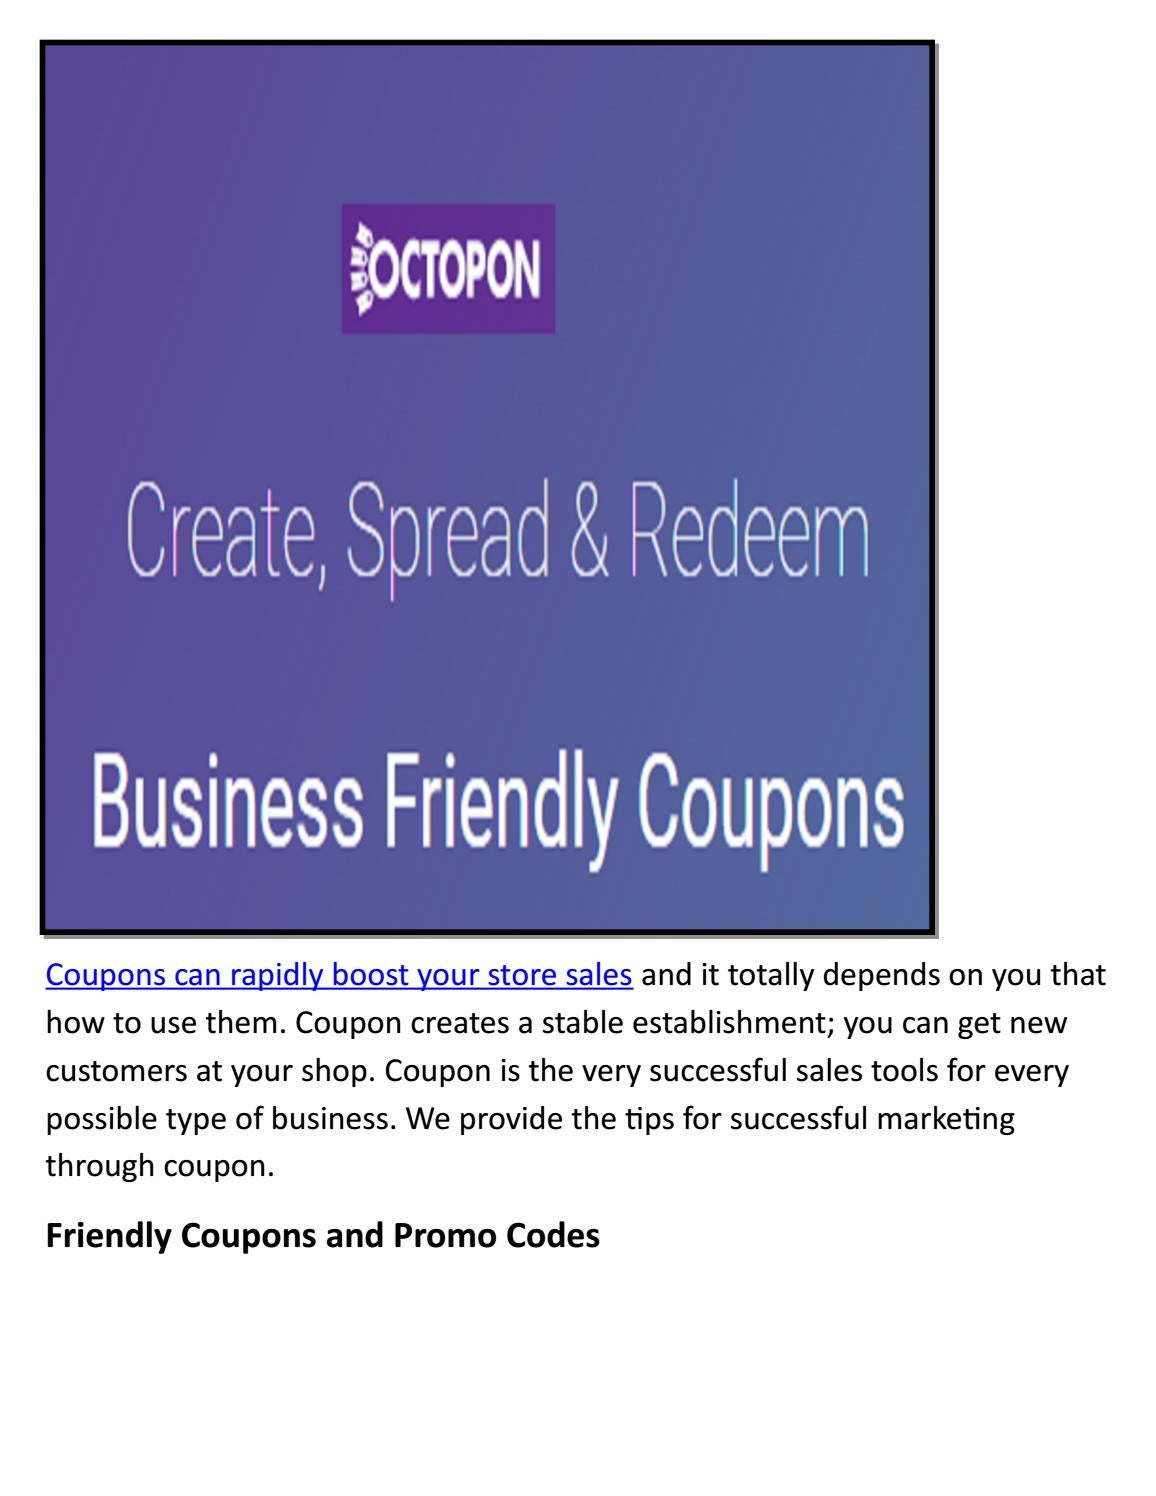 photograph regarding Depends Printable Coupons titled Make your personal coupon cost-free printable via Octopon Inc - issuu